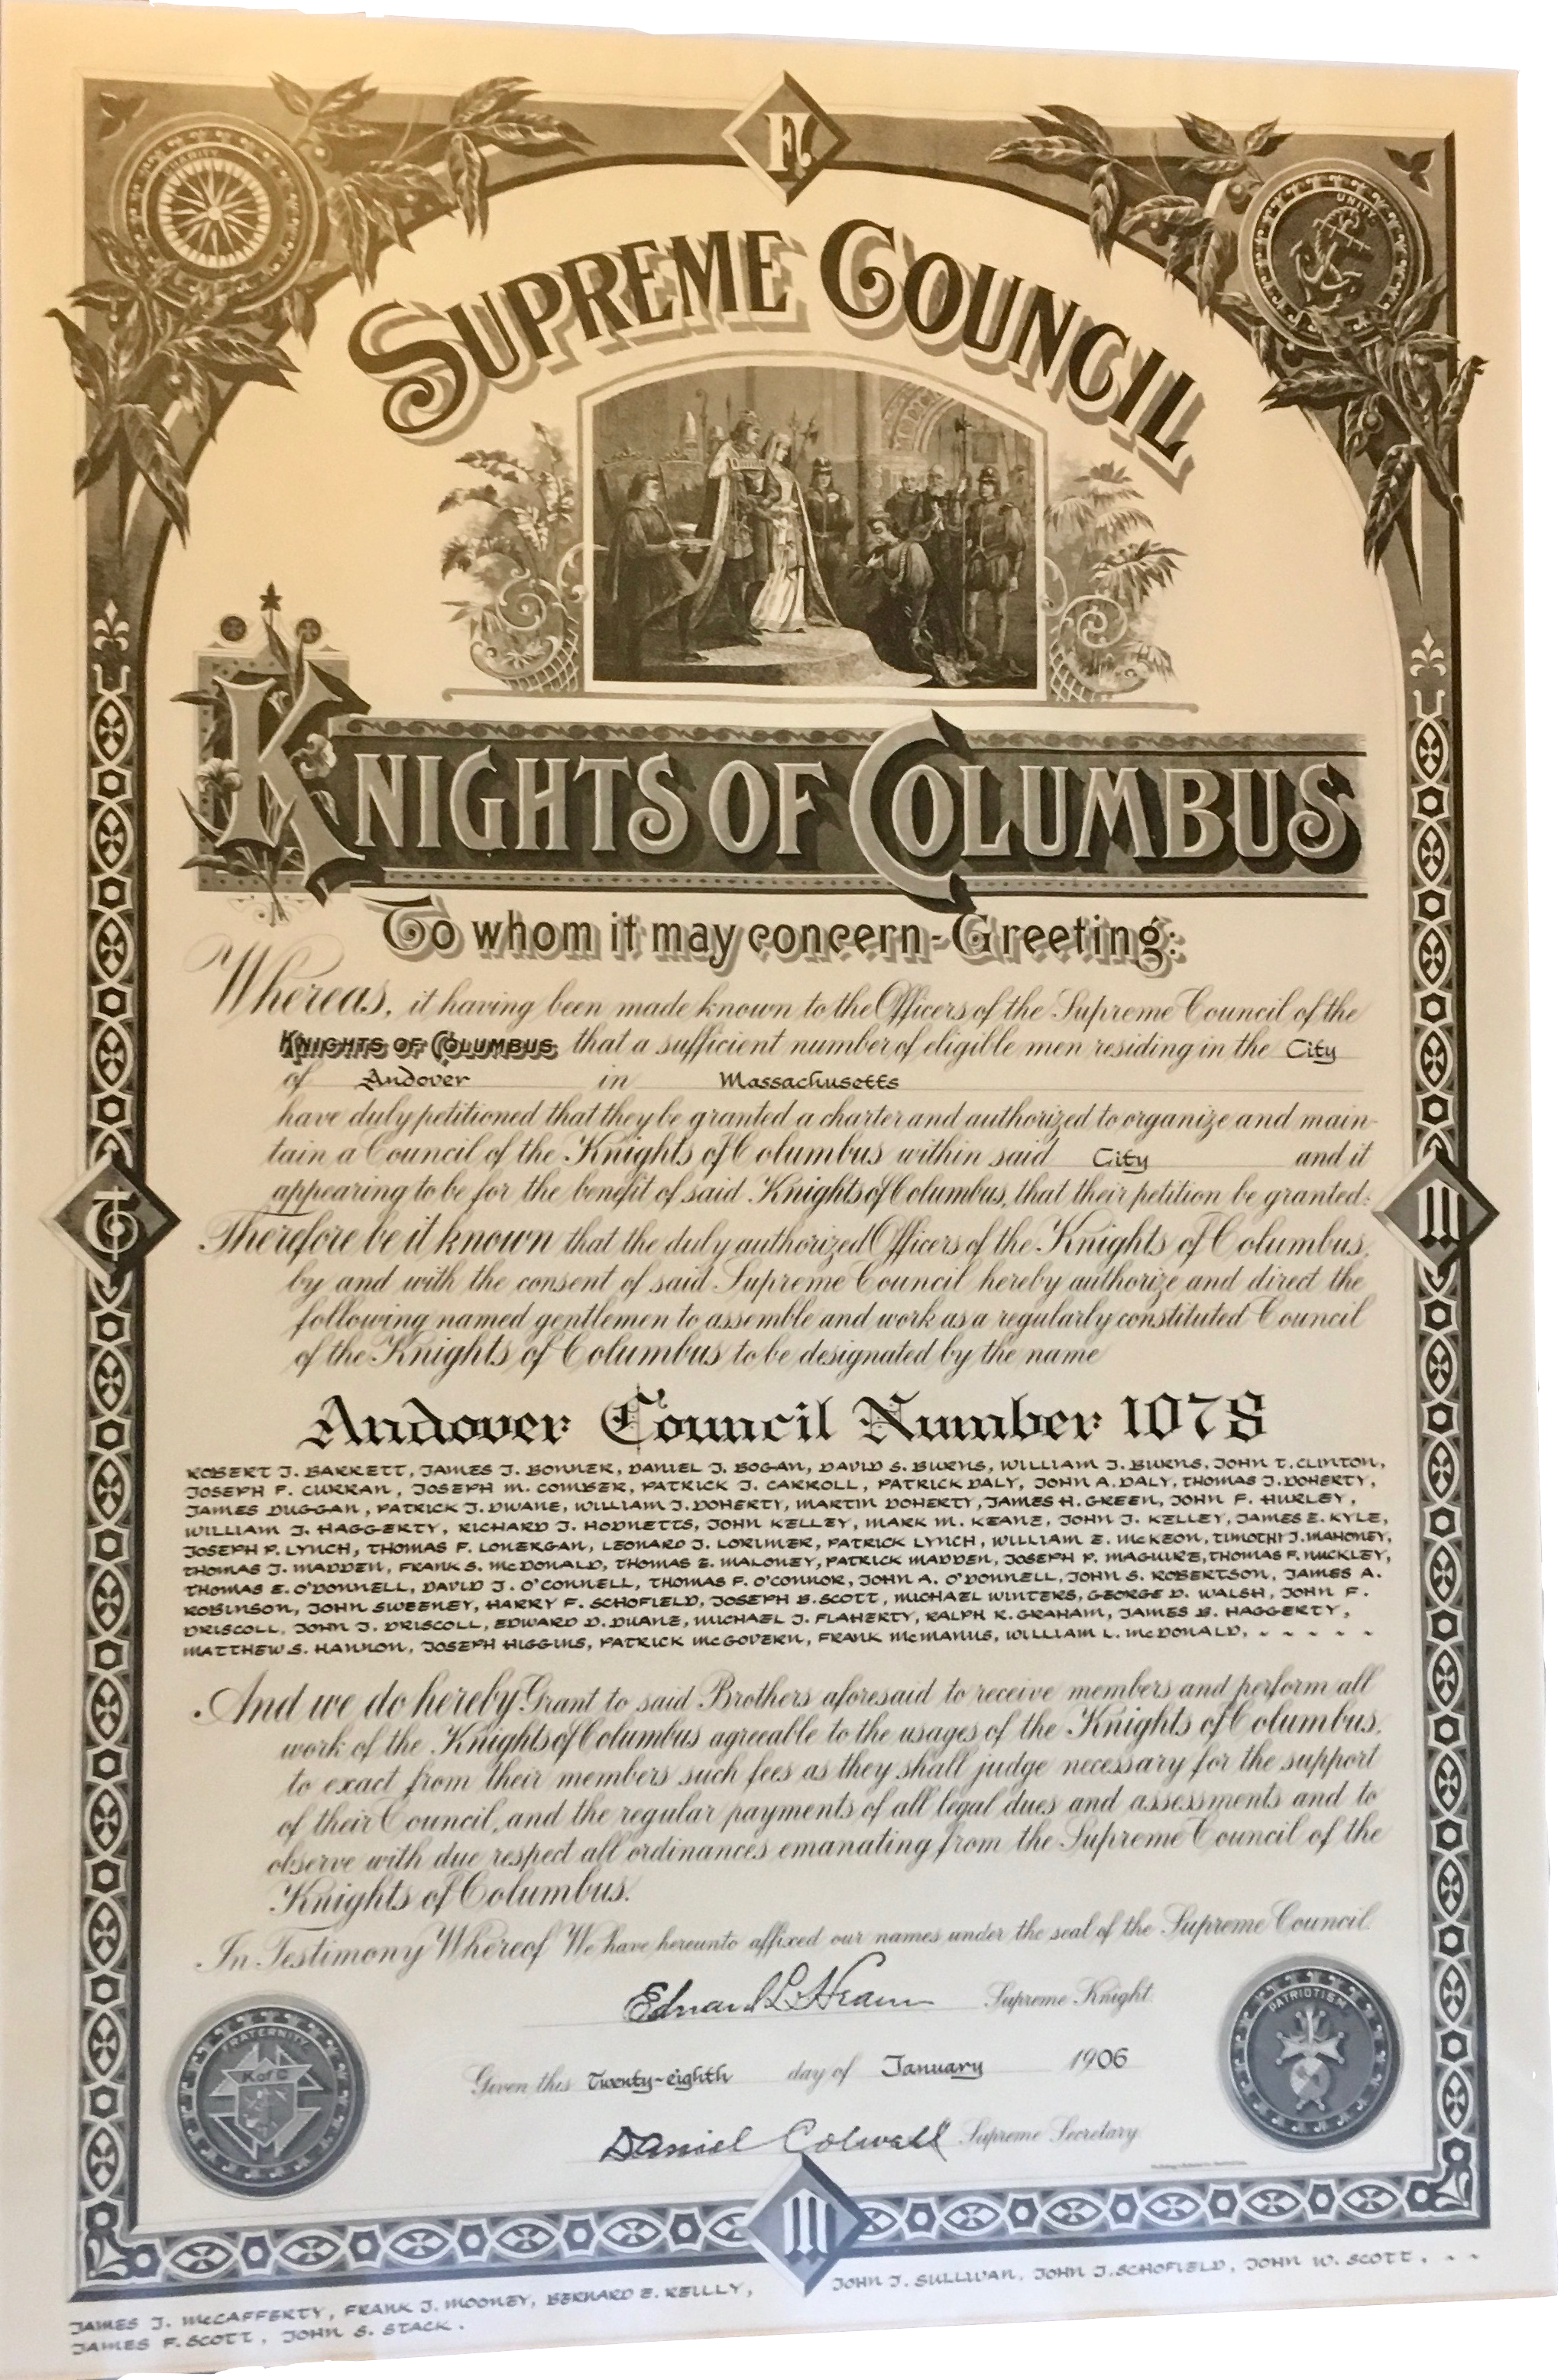 Knights of Columbus charter